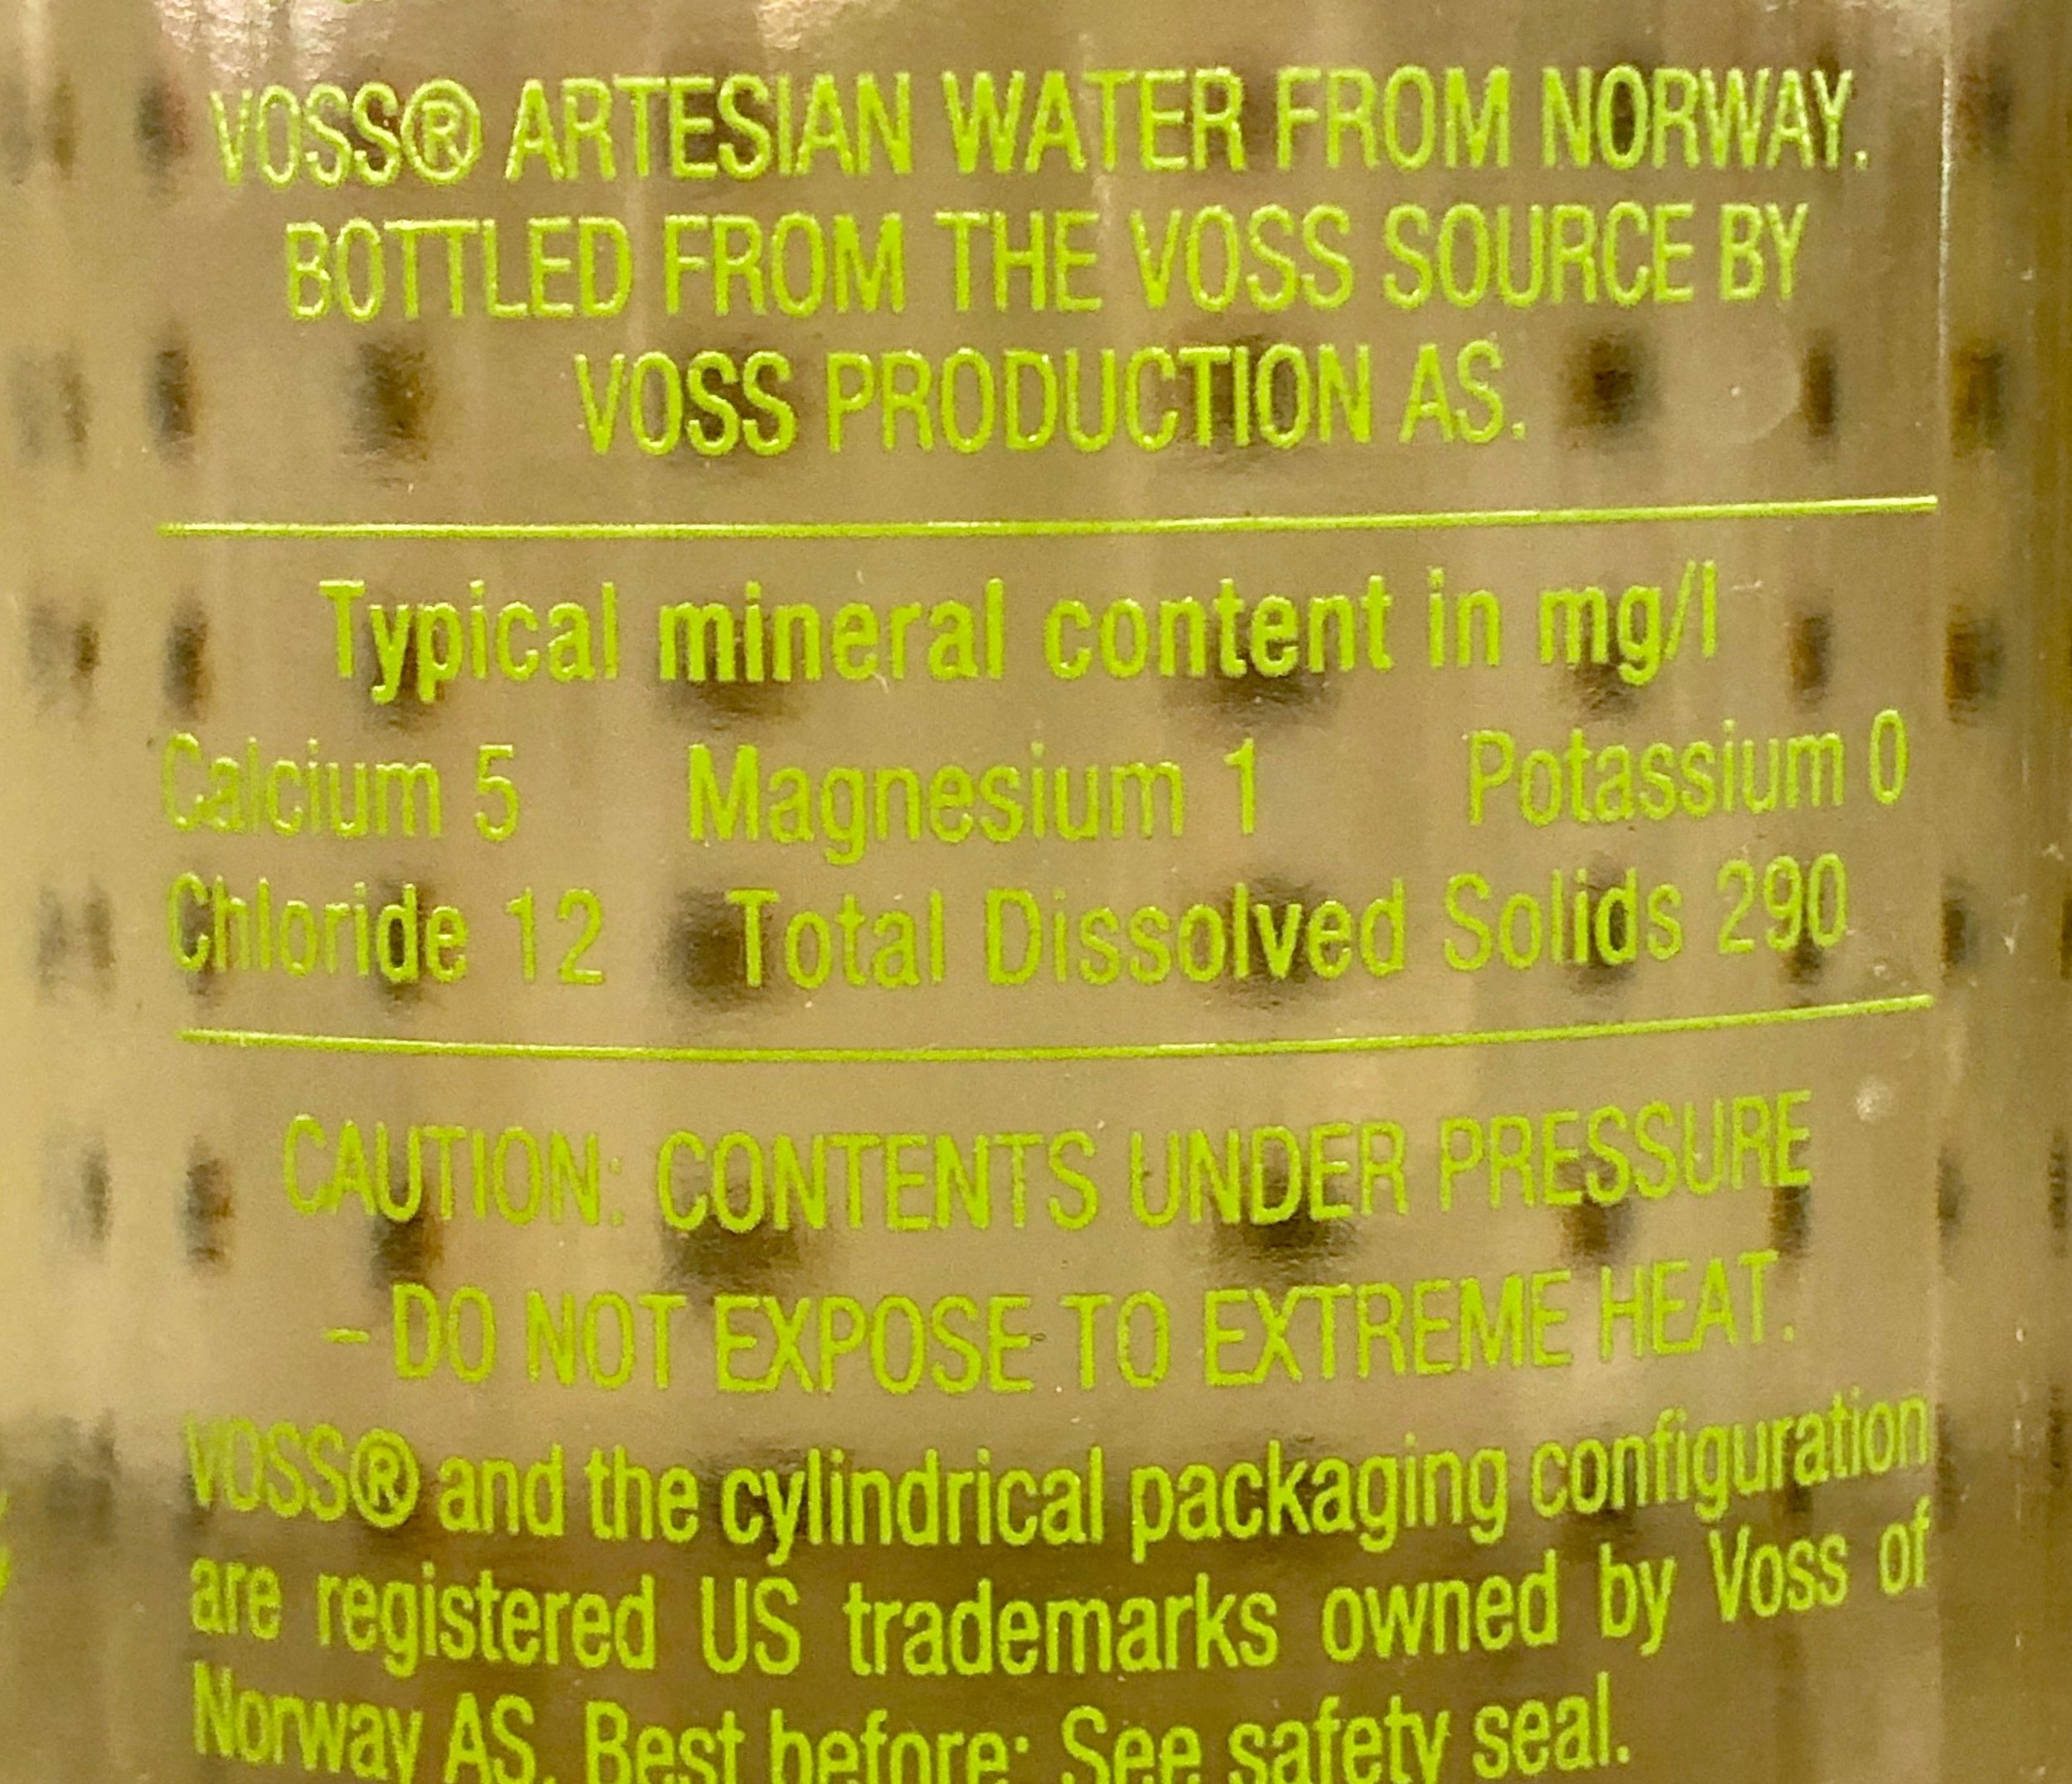 Read the label carefully to explore the mineral content of bottled water